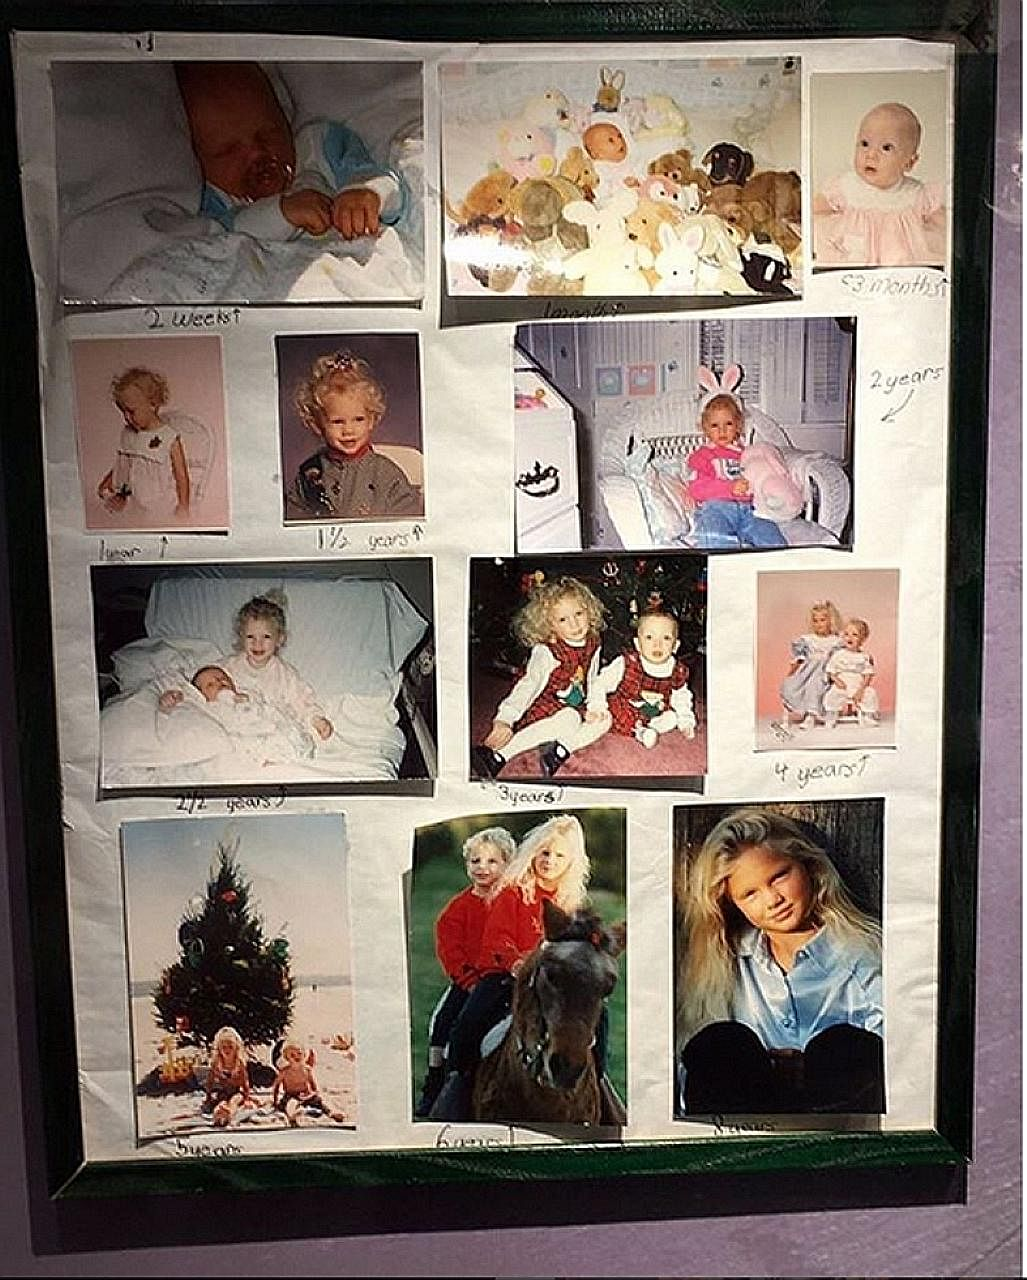 Photos of singer Taylor Swift from ages one to eight are included in the exhibition.